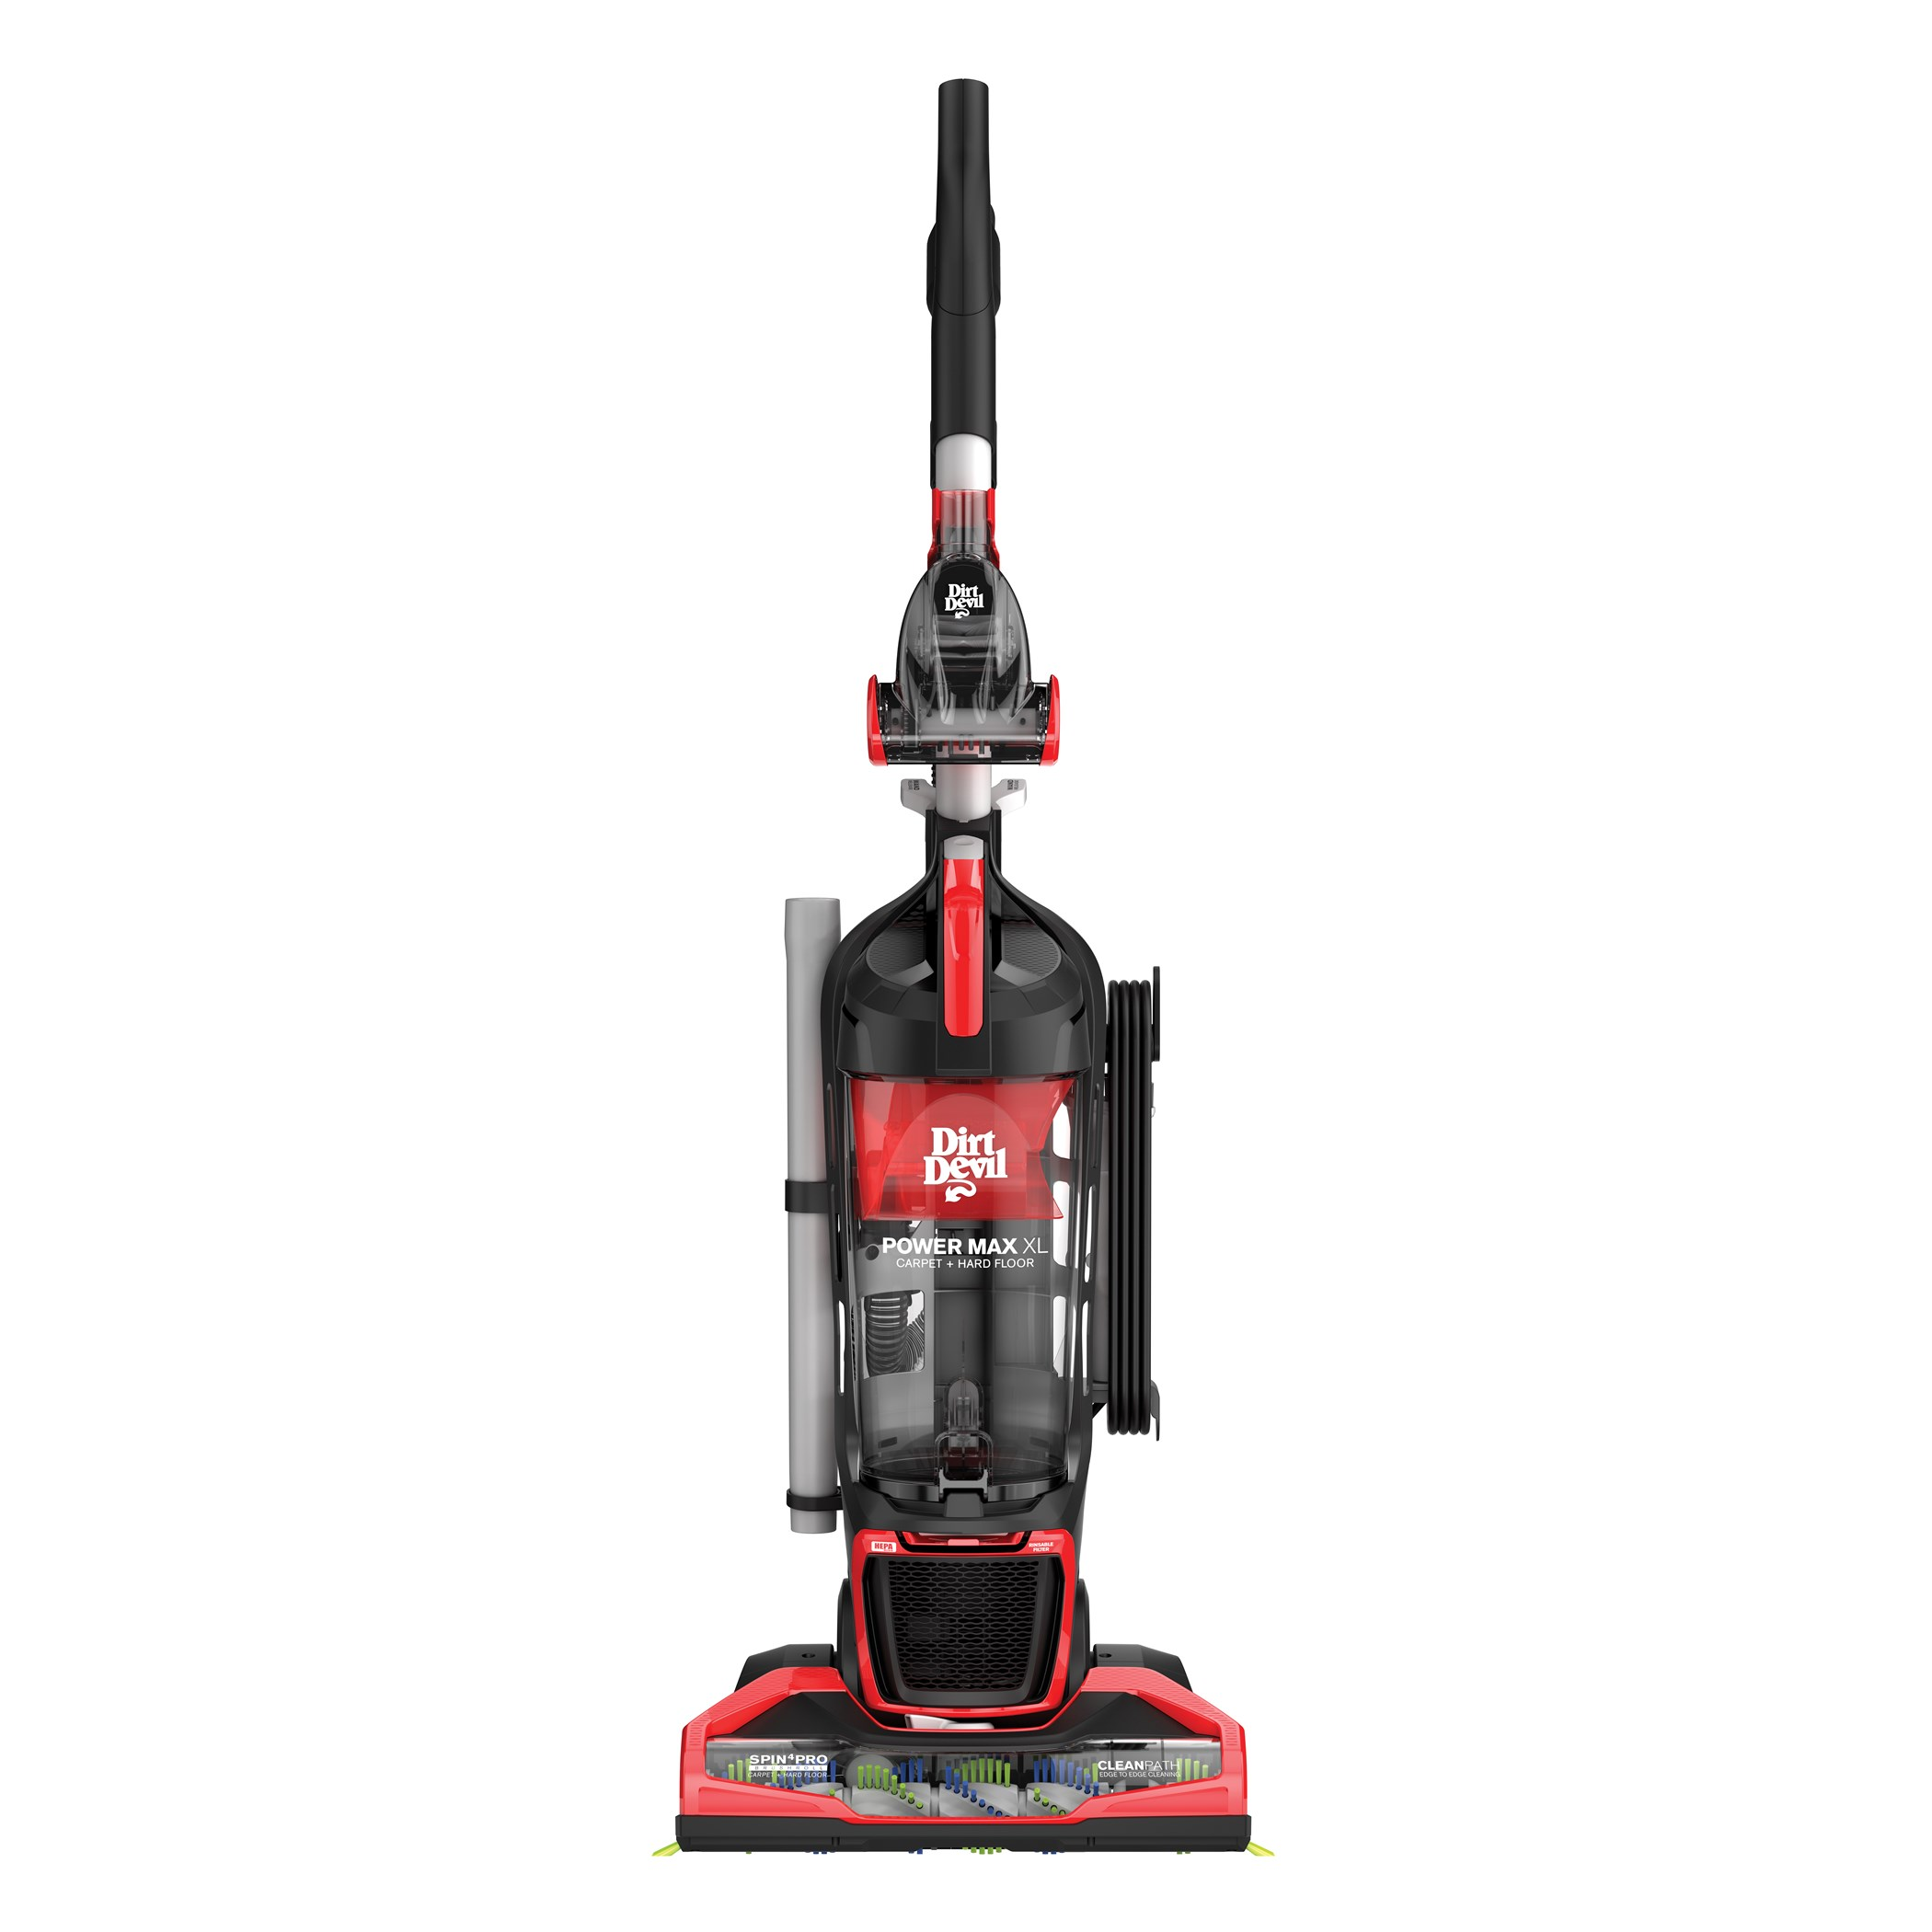 Dirt Devil Power Max XL Bagless Upright Vacuum, UD70181